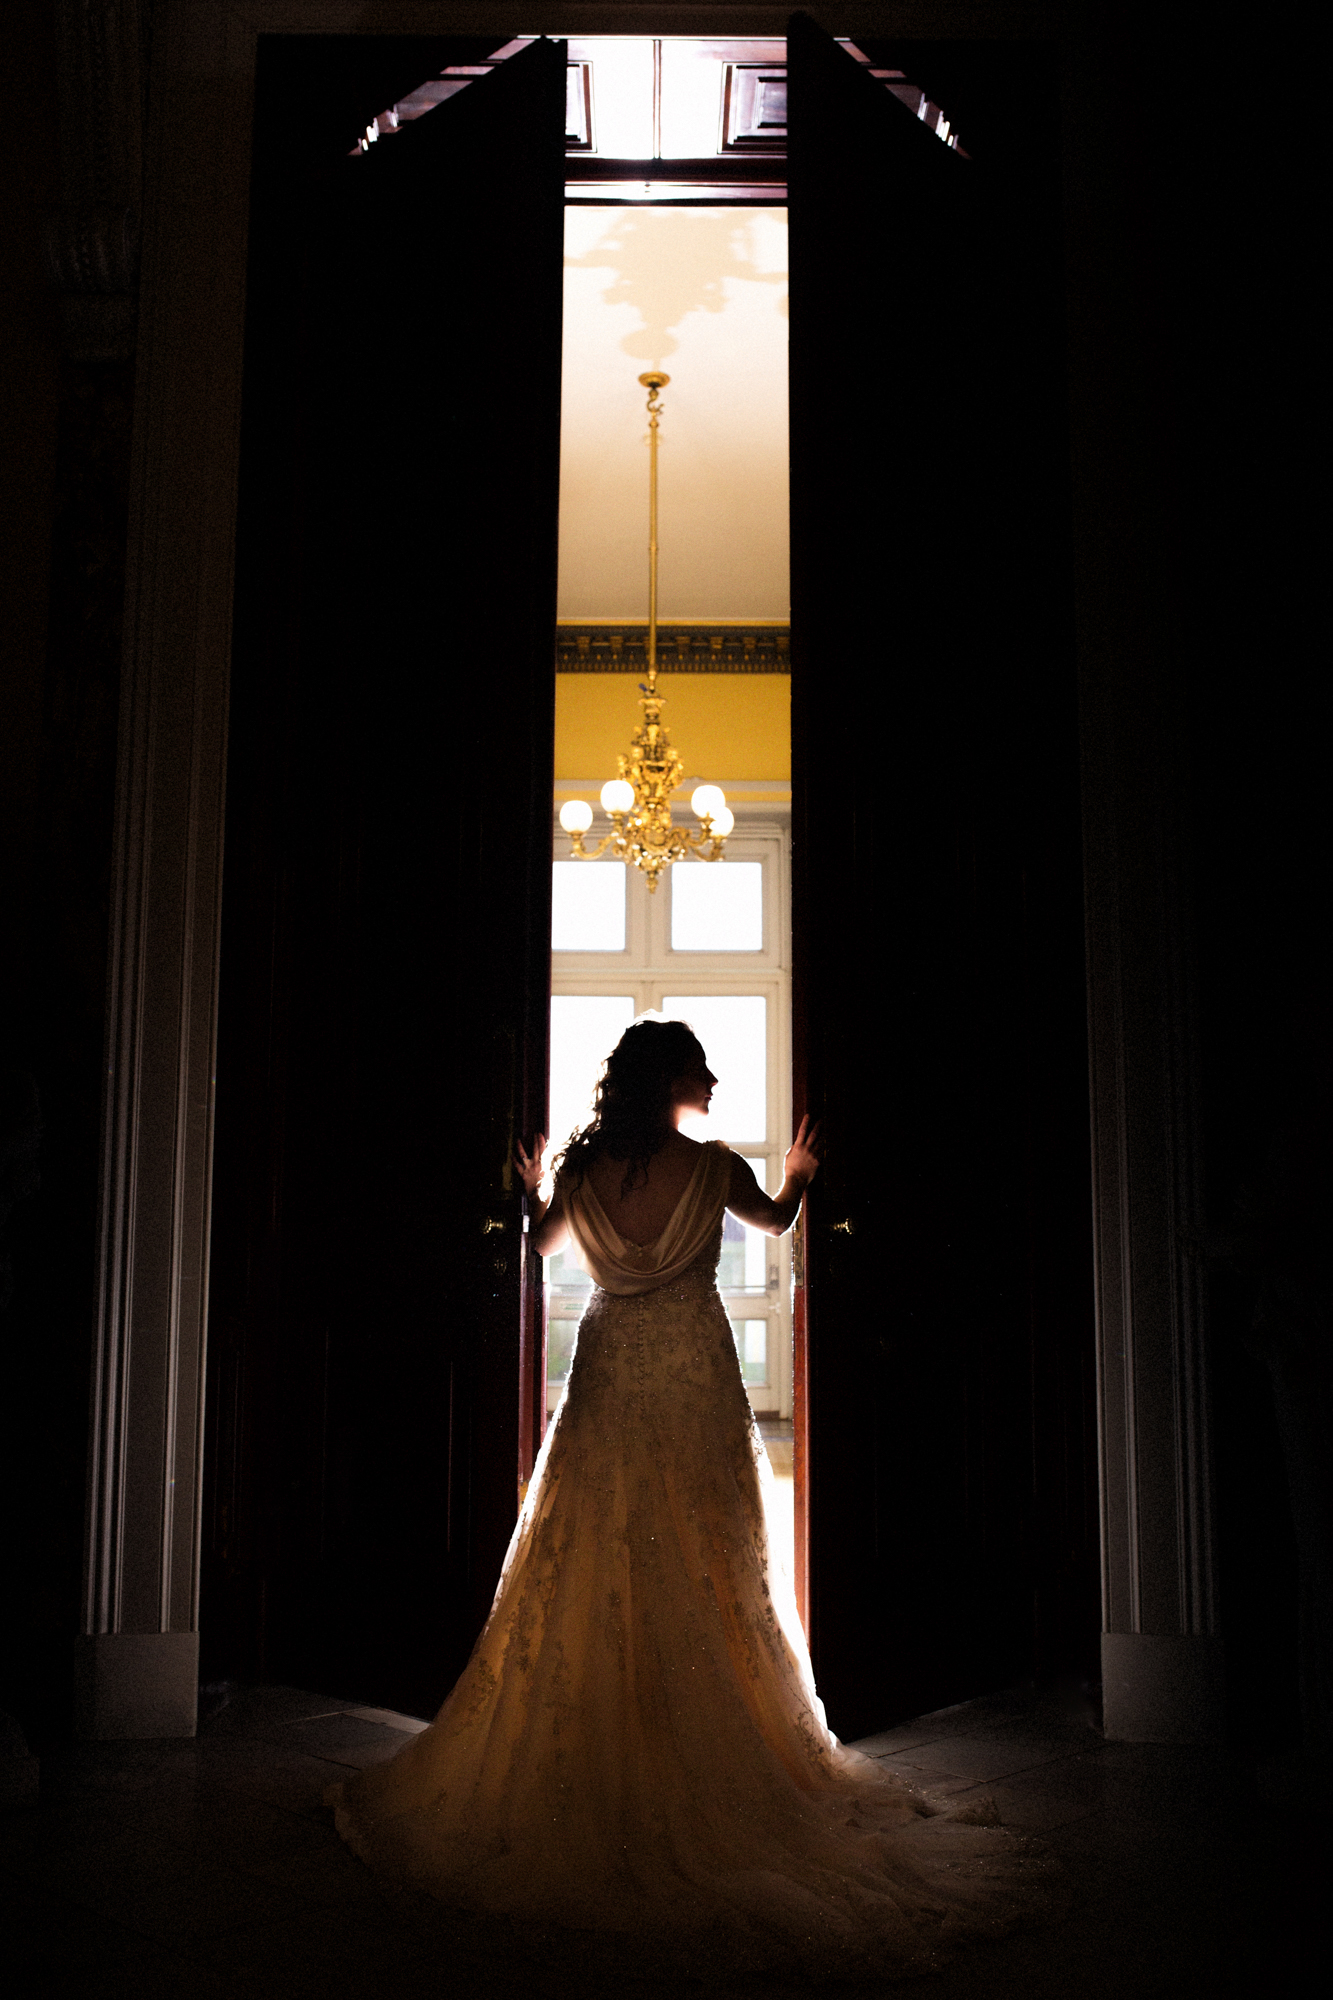 wynyard hall wedding photographer duncan mccall-1045.jpg